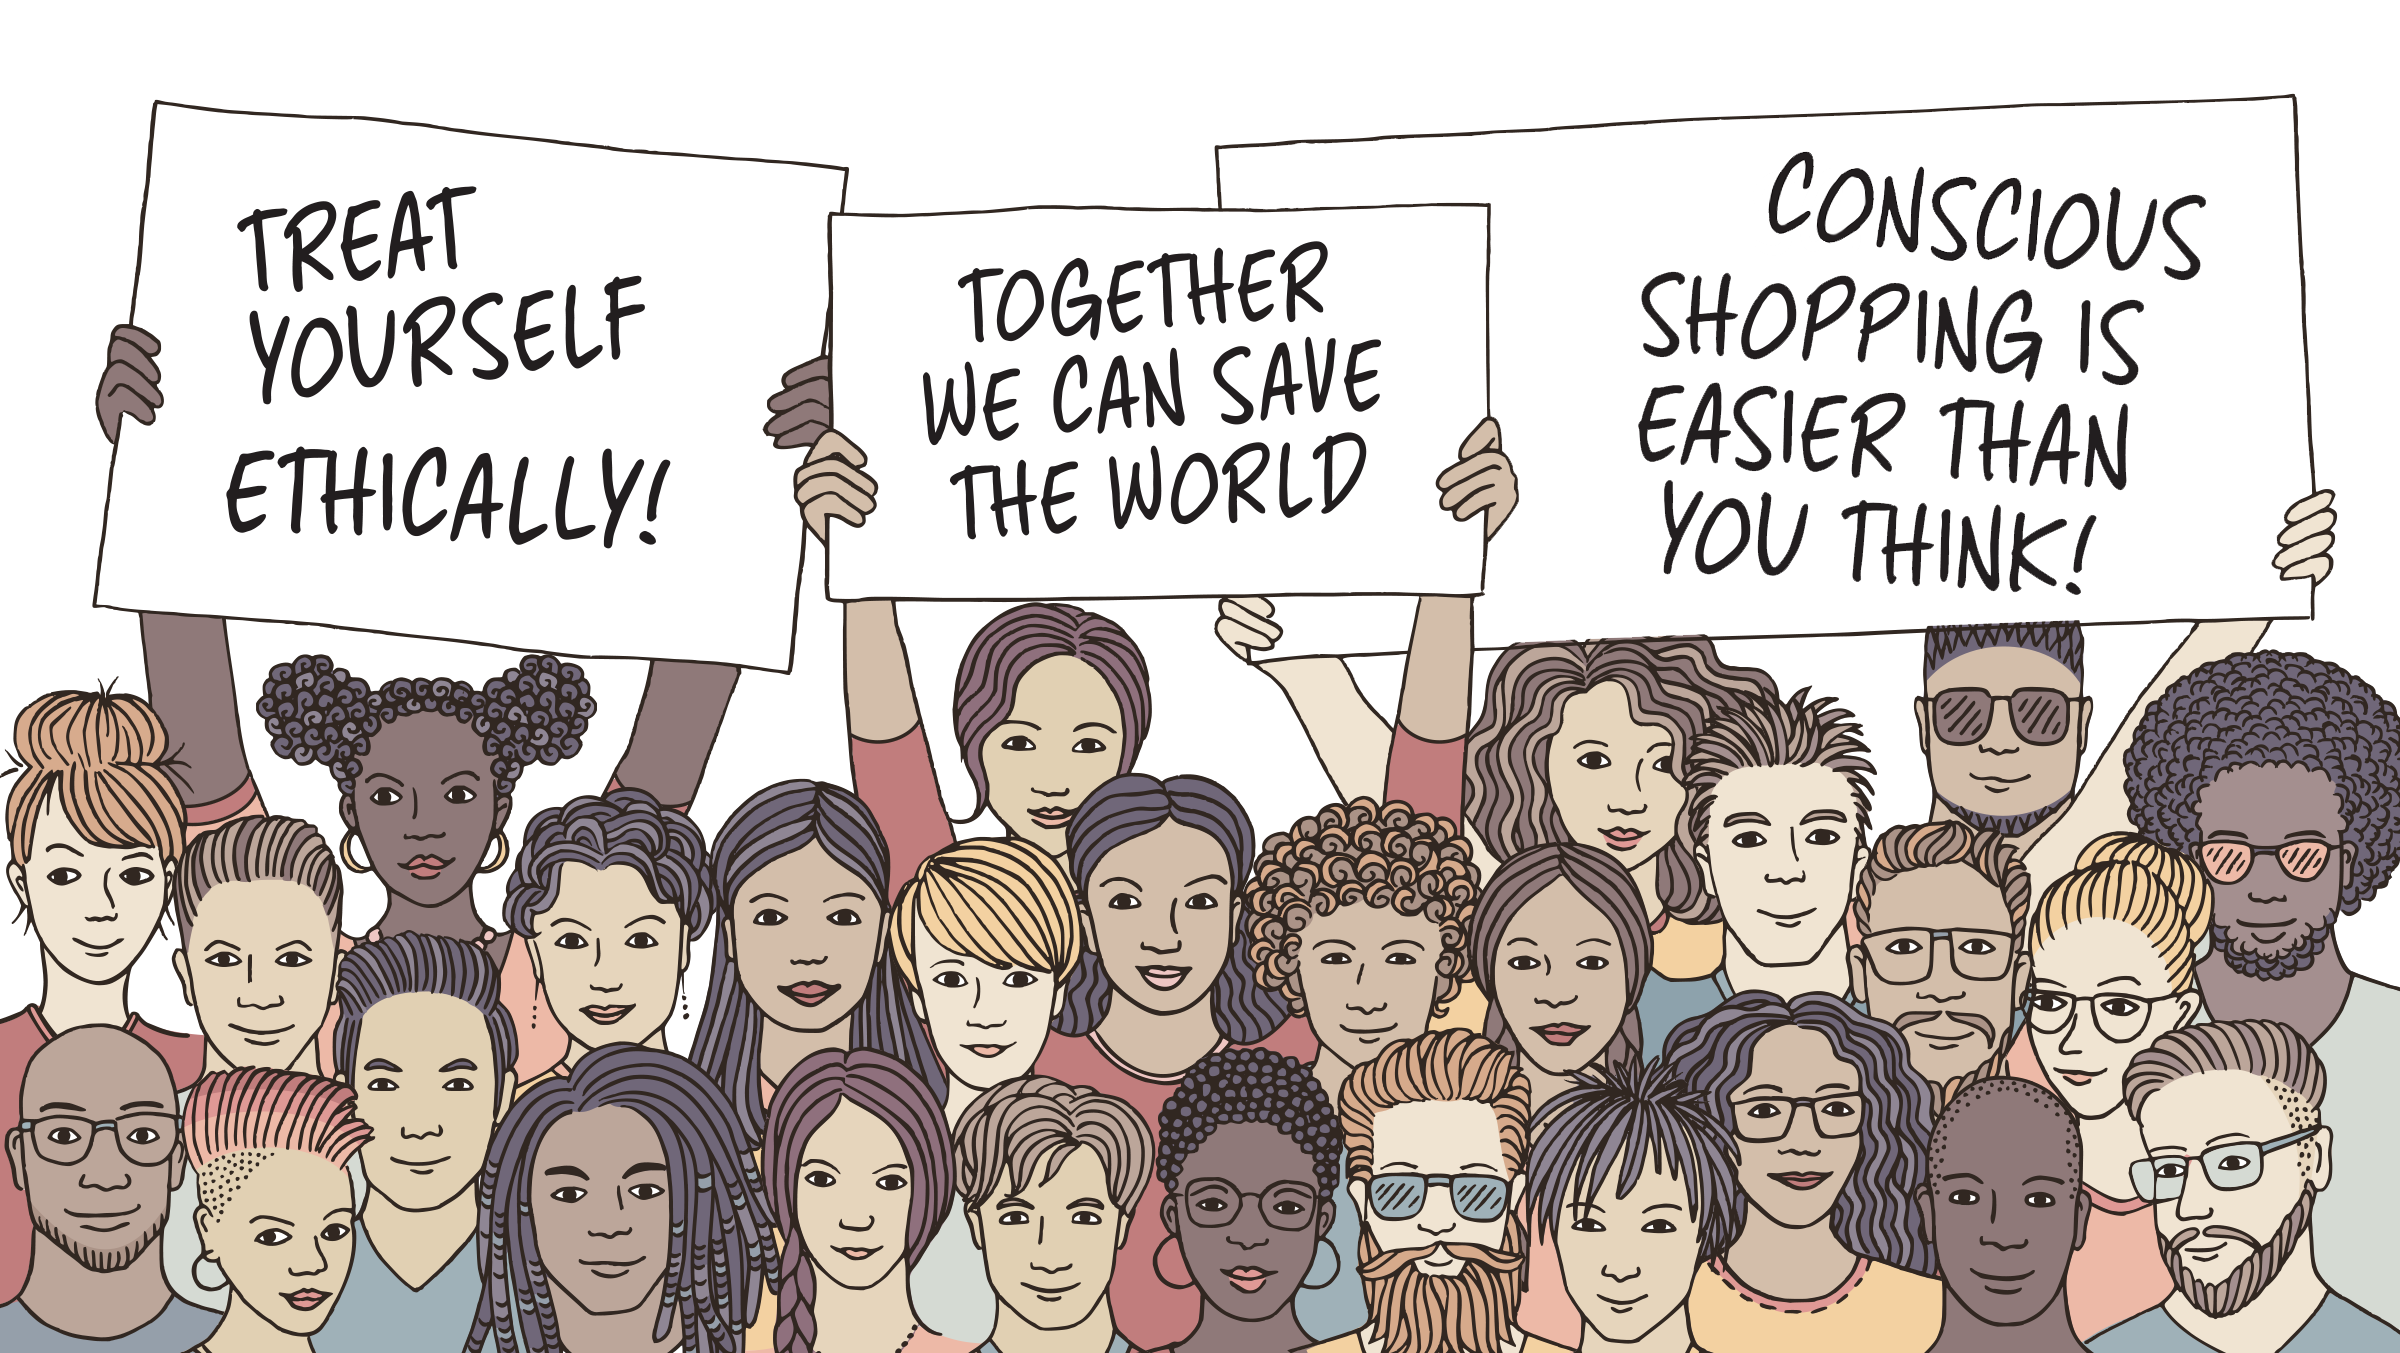 crowd of people holding signs - treat yourself ethically, conscious shopping is easier than you think, together we can save the world.